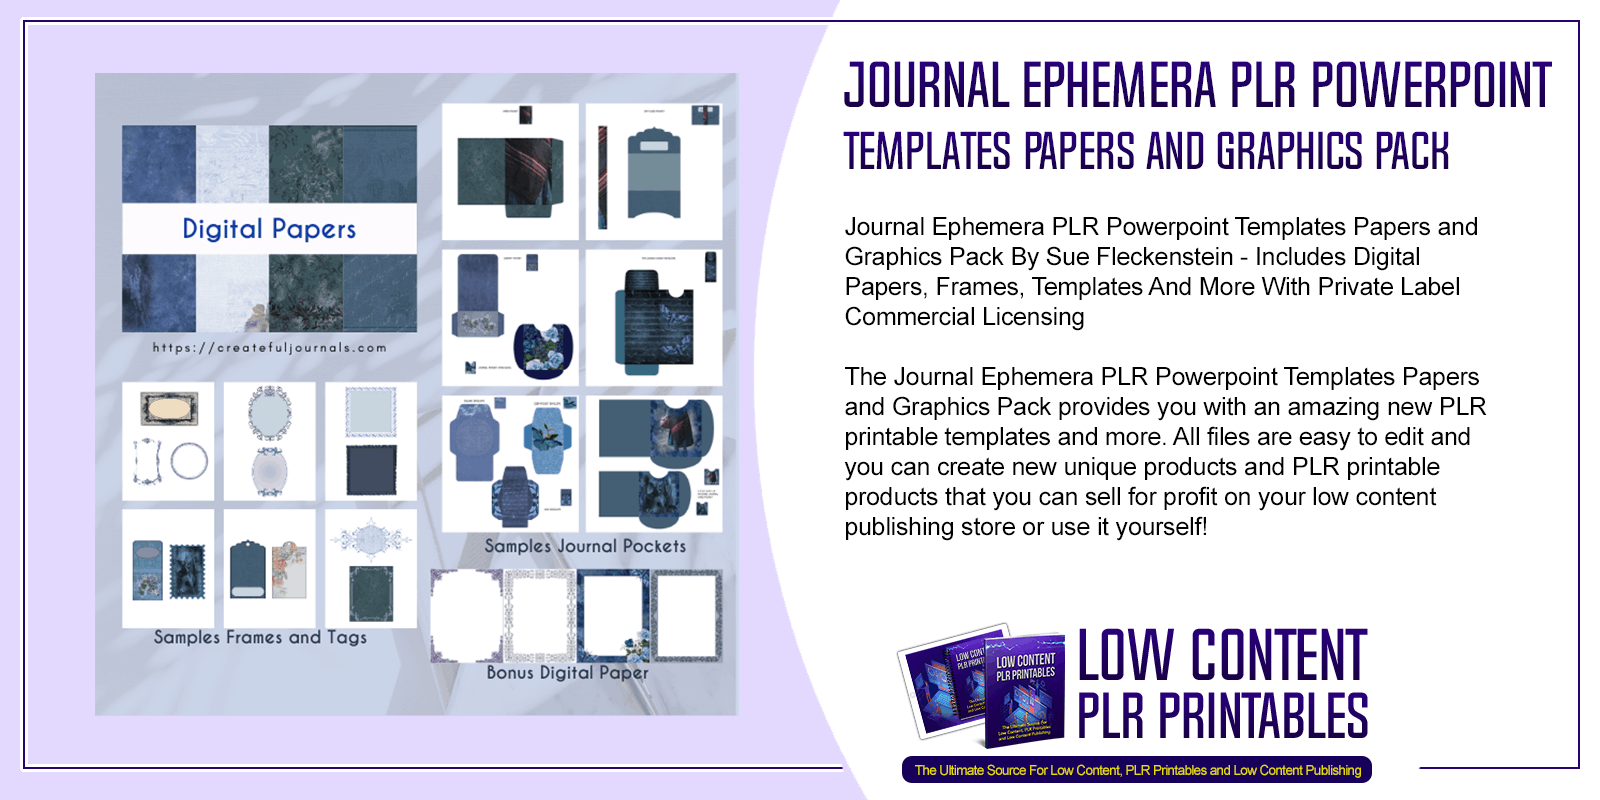 Journal Ephemera PLR Powerpoint Templates Papers and Graphics Pack